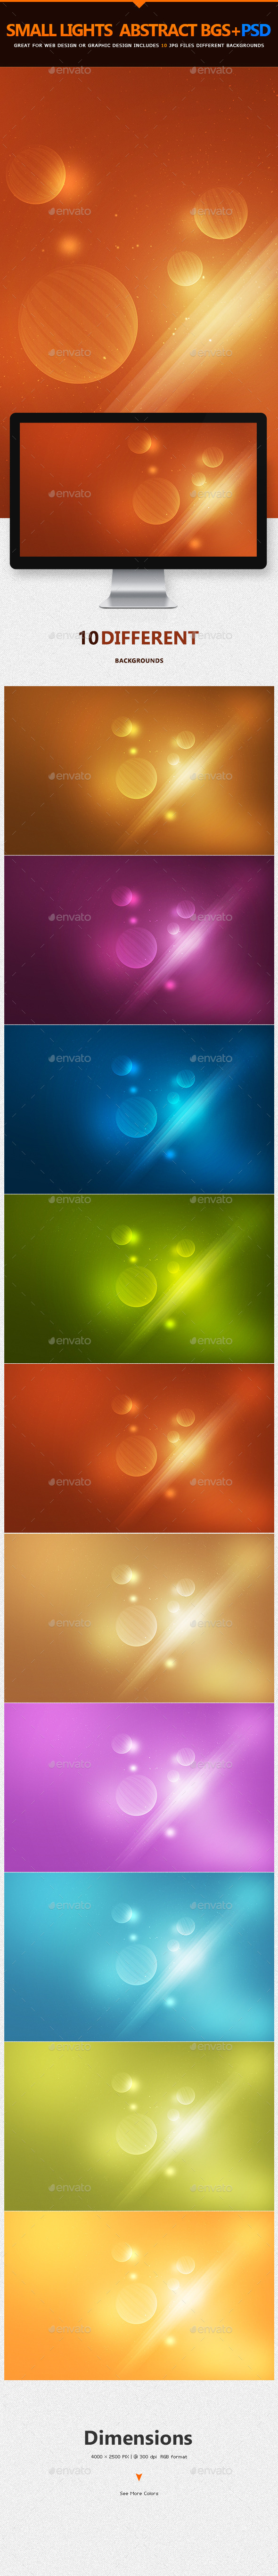 Small Lights Abstract Backgrounds | v2 - Abstract Backgrounds